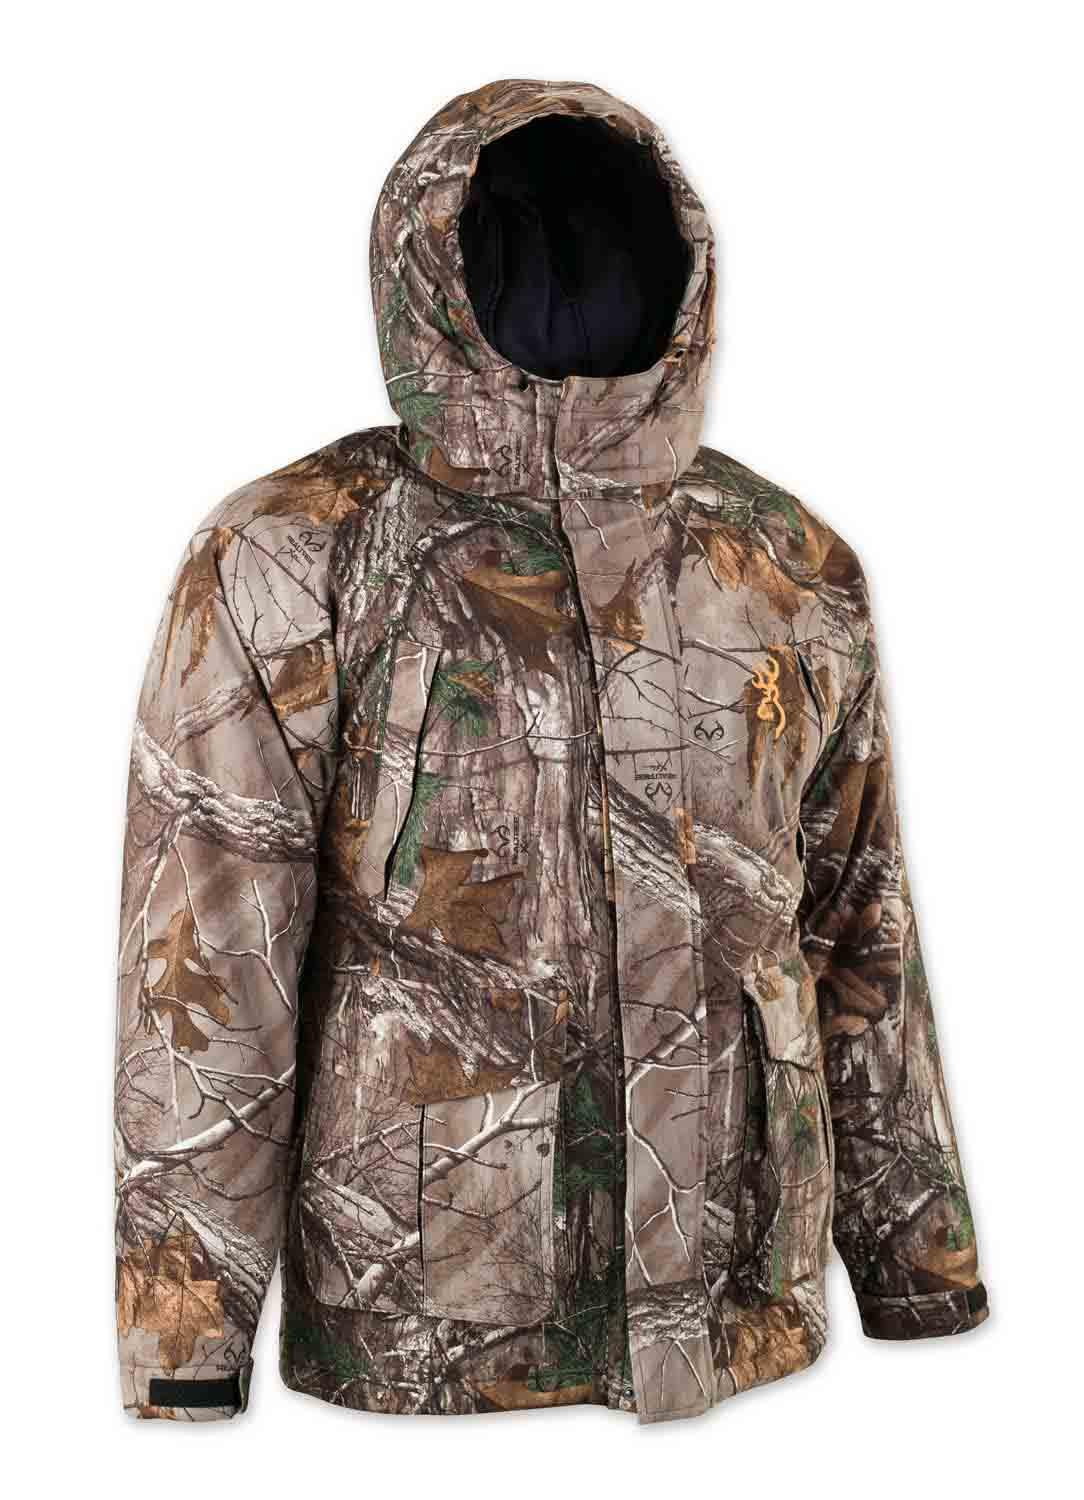 Browning Junior Wasatch Insulated Rain Parka in Realtree Xtra Camo_1.jpg